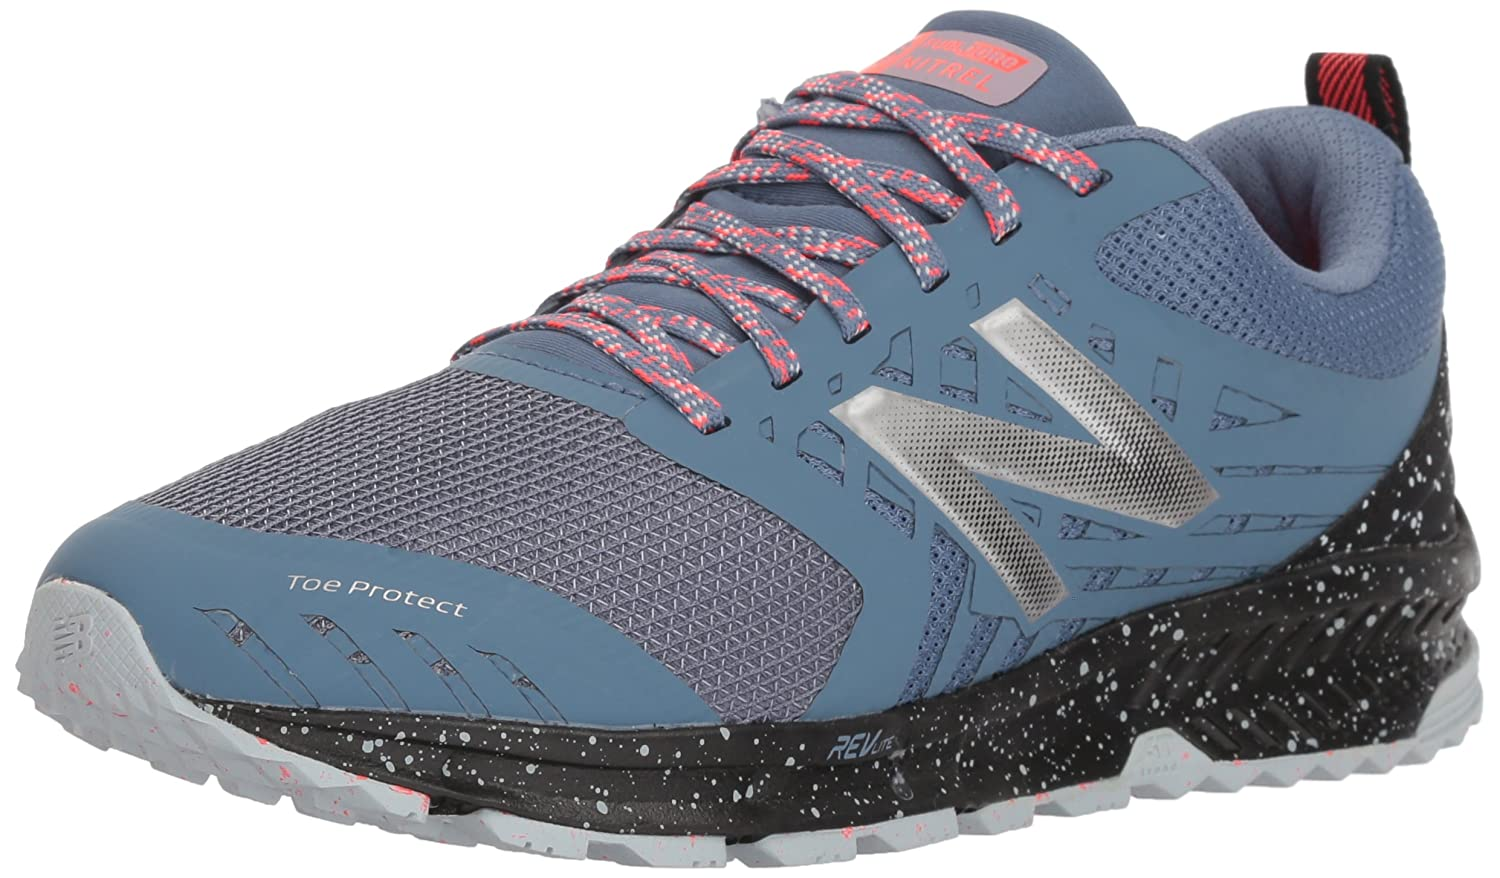 New Balance Women's Nitrel v1 FuelCore Trail Running Shoe B0751RBN65 9 D US|Reflection